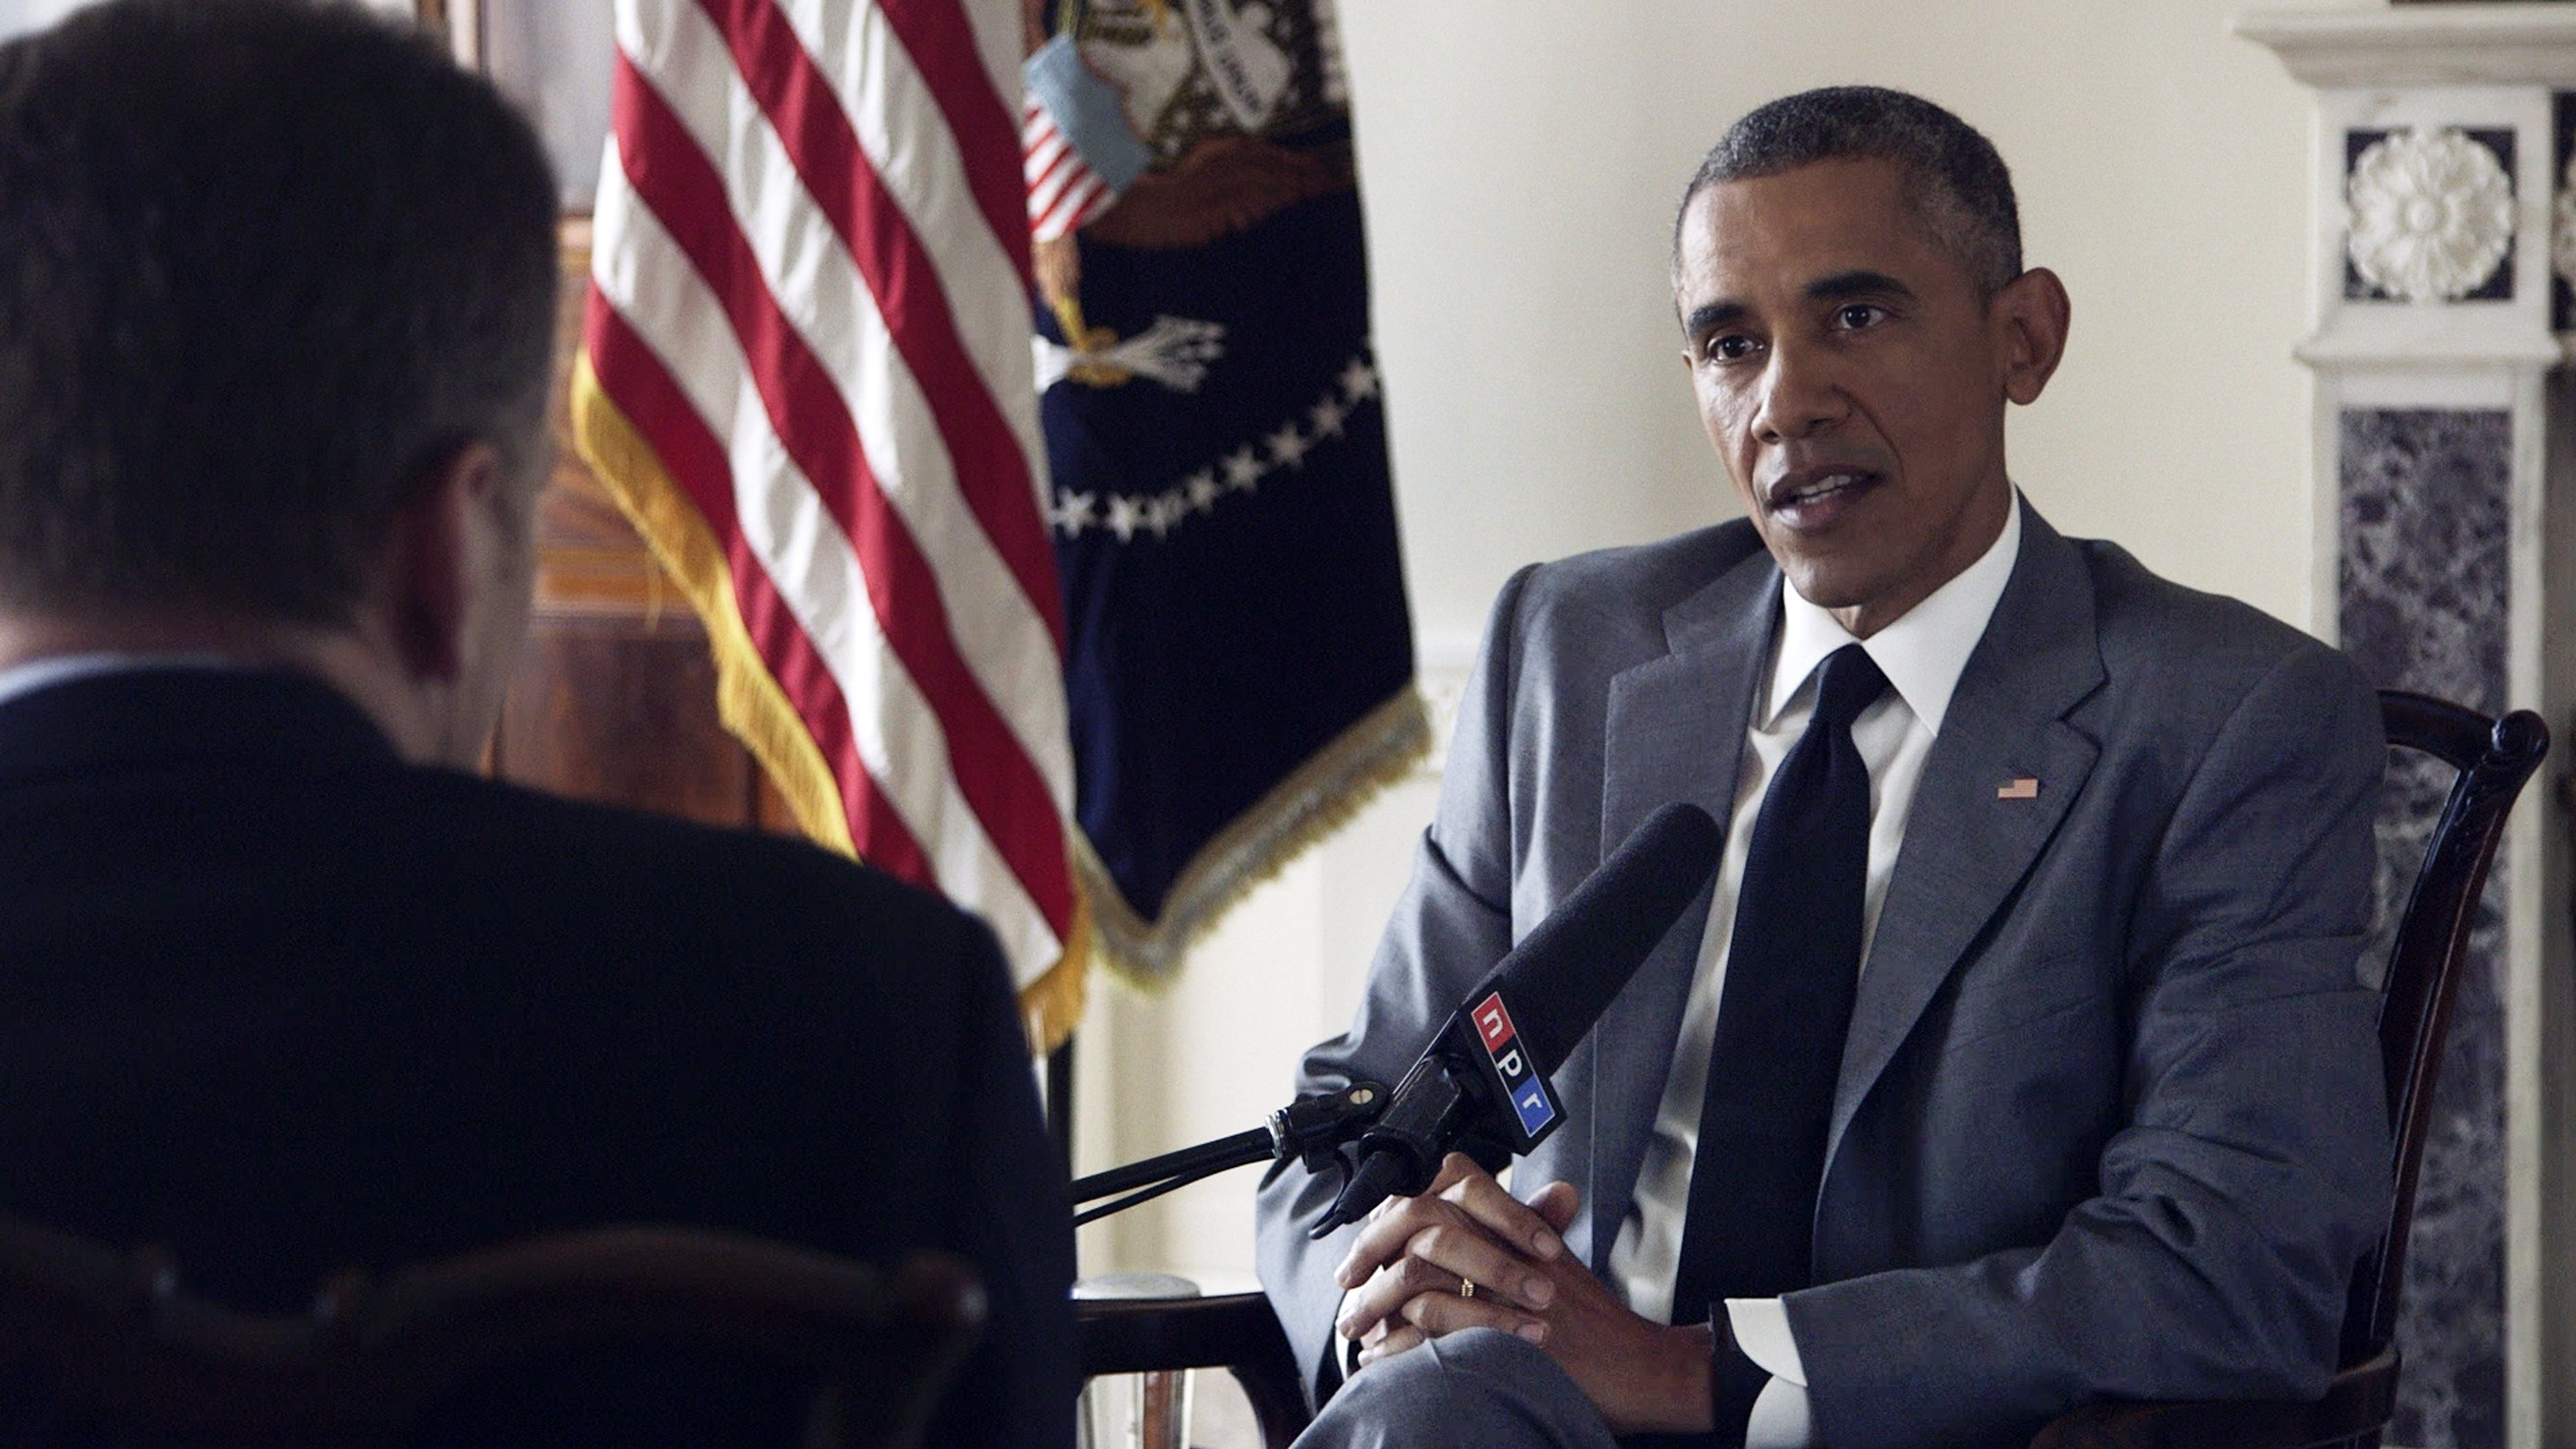 NPR's Morning Edition host Steve Inskeep interviews President Obama at the White House on Monday.